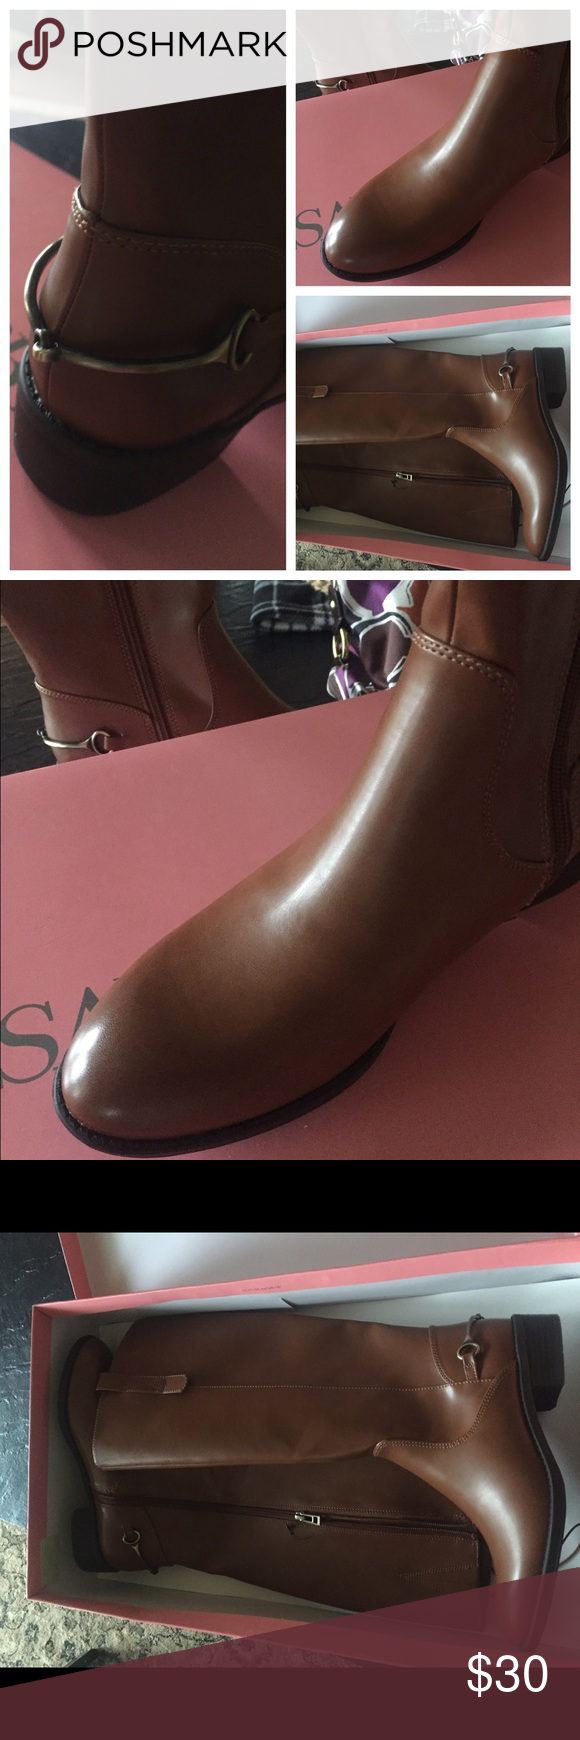 Riding boots - tan/cognac New riding boots inbox. Never worn, tried on in store only. Just a little too snug for my curvy calves - they zip but it's not comfy! 👢👢 Sam & Libby Shoes Heeled Boots